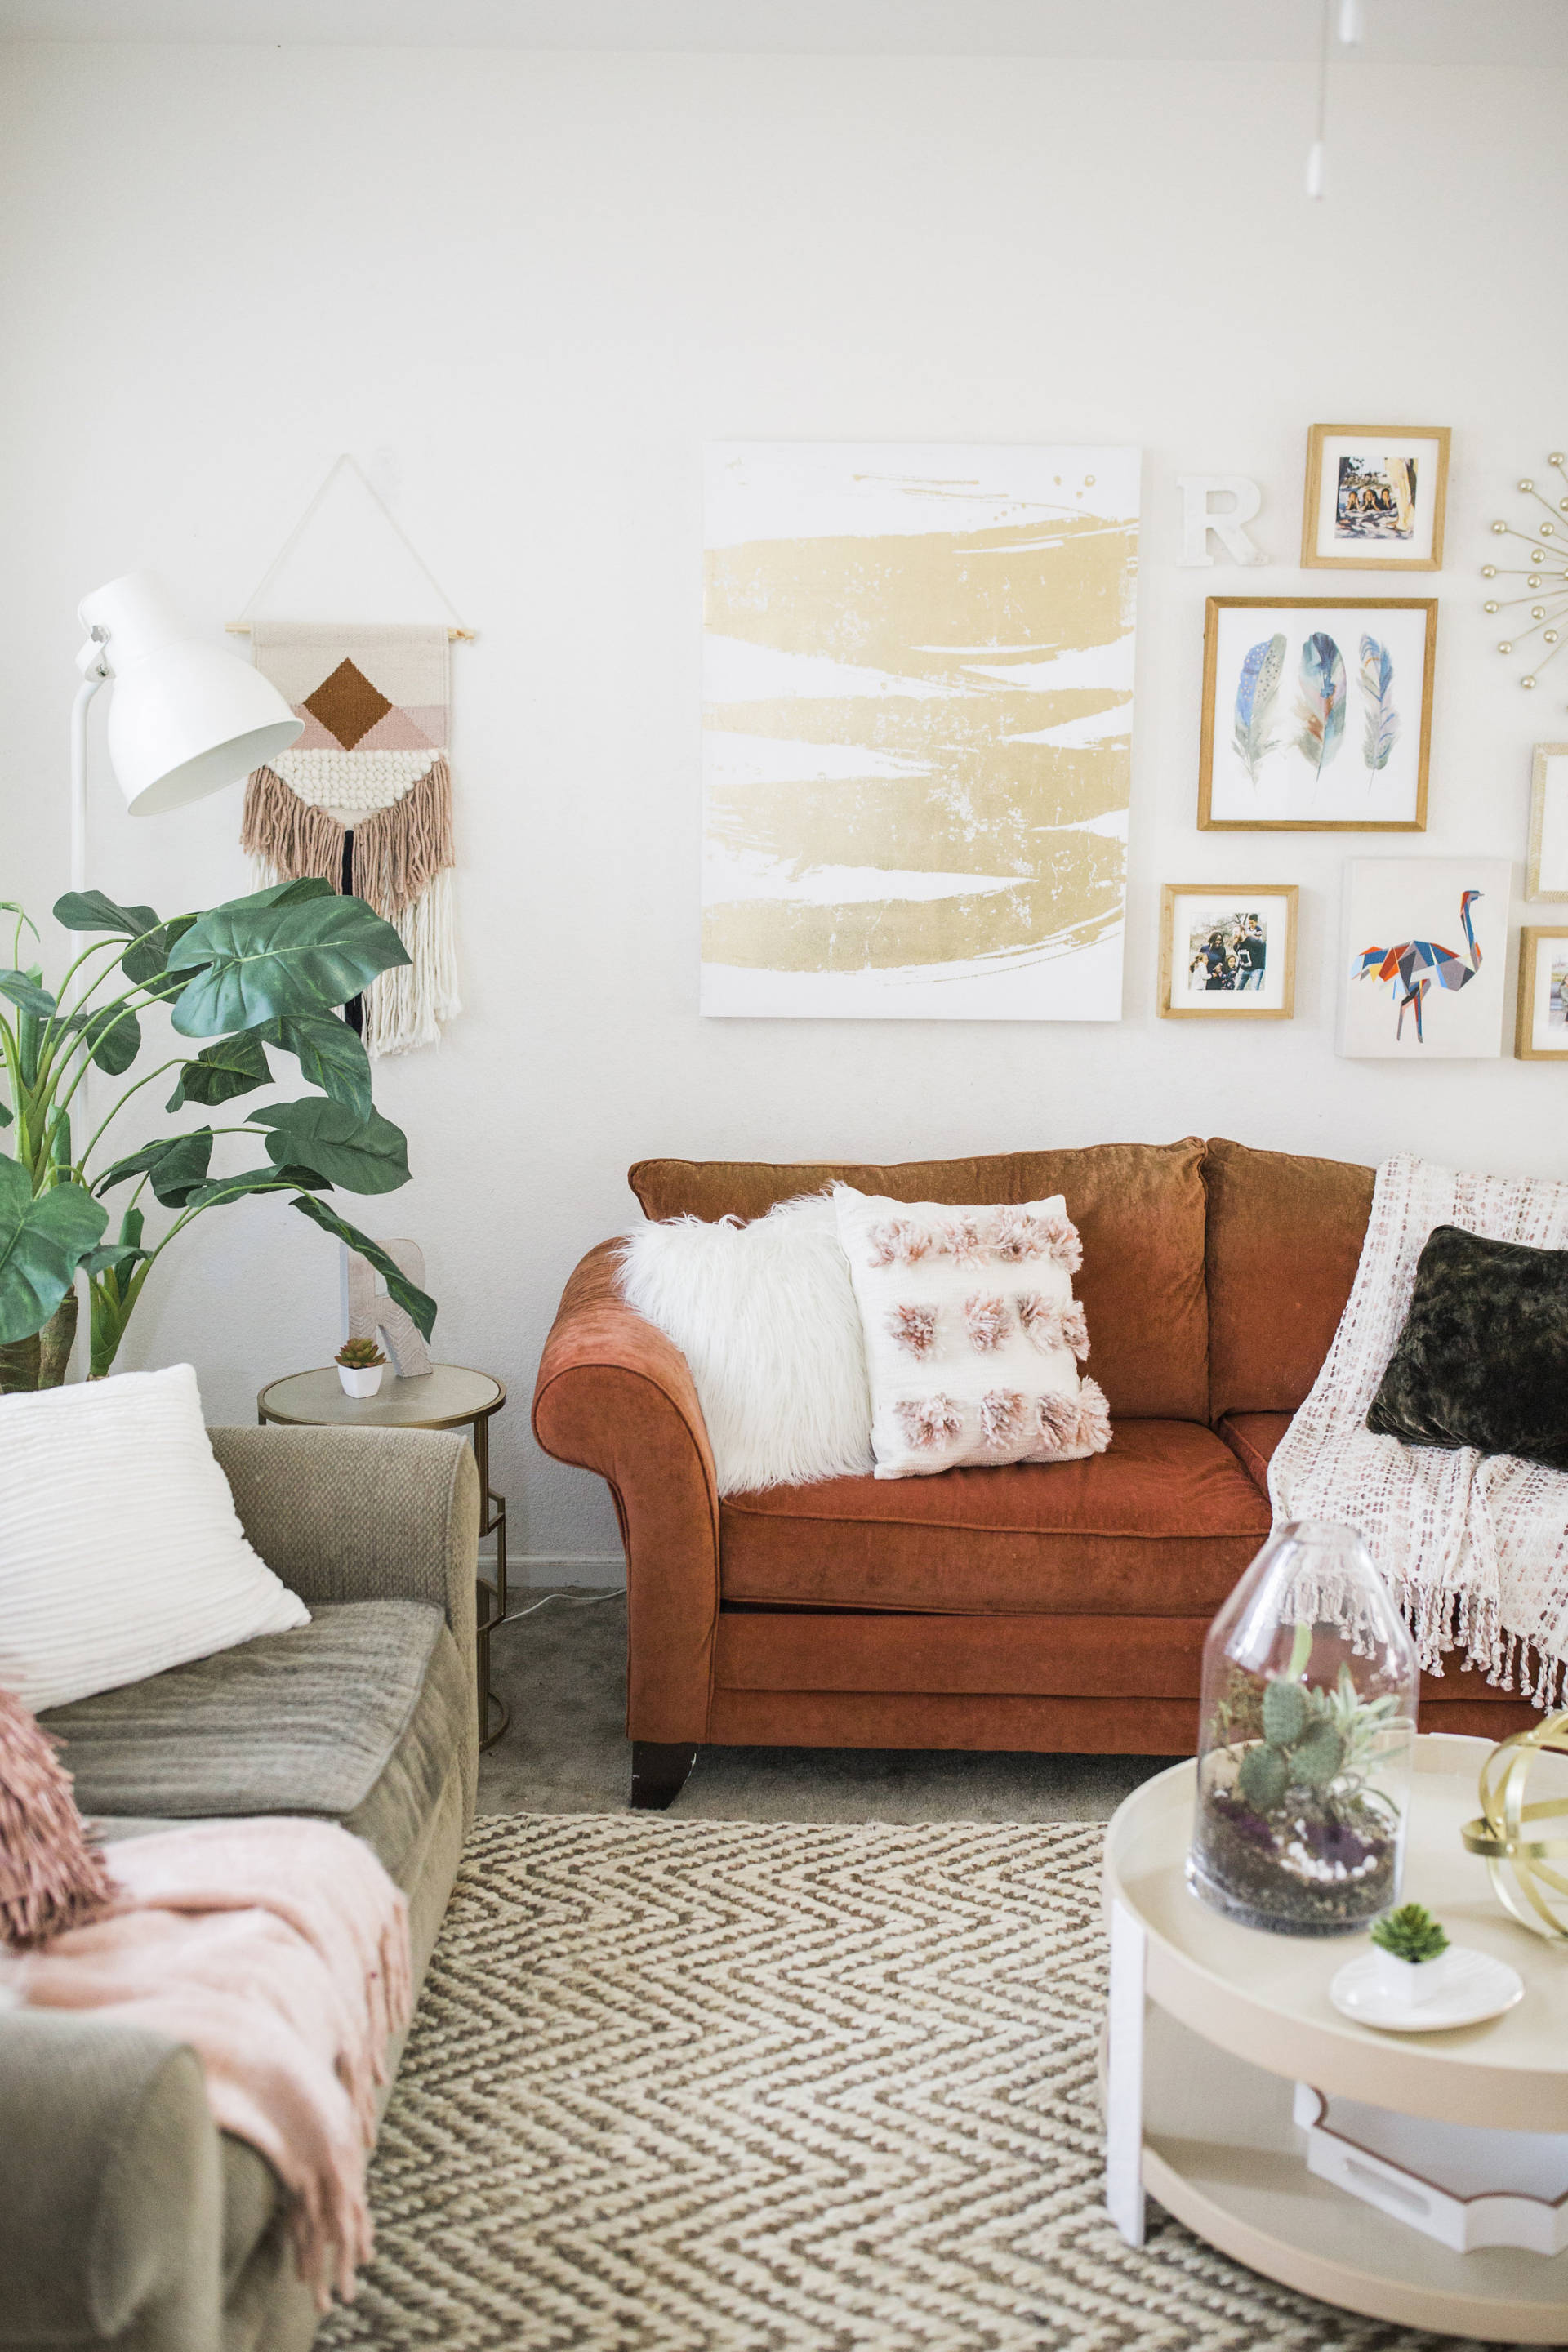 My complete living room make over is finally here! We spruced up the space with the same couches and few key items.